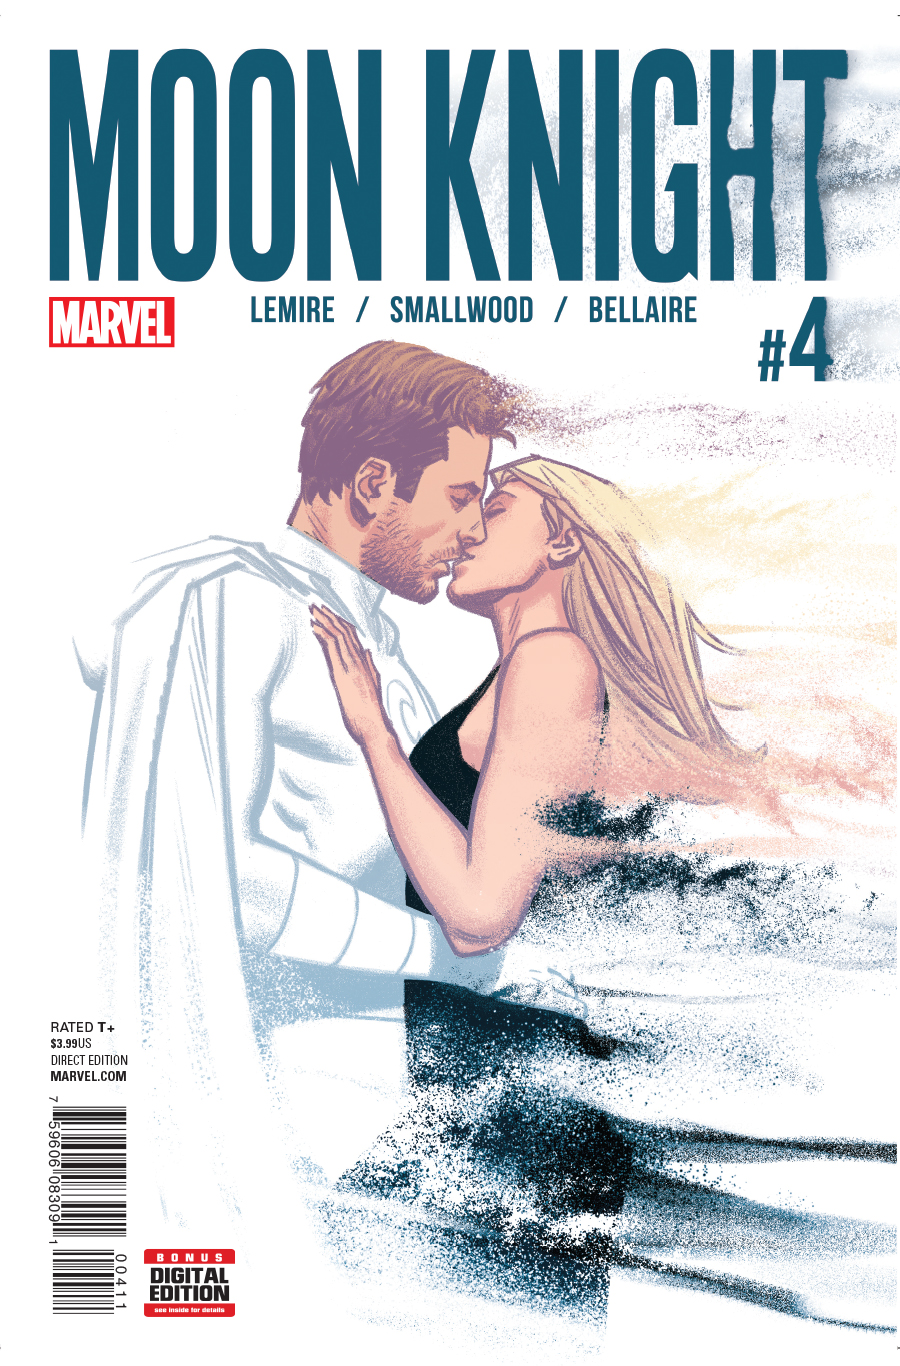 Cover by Greg Smallwood